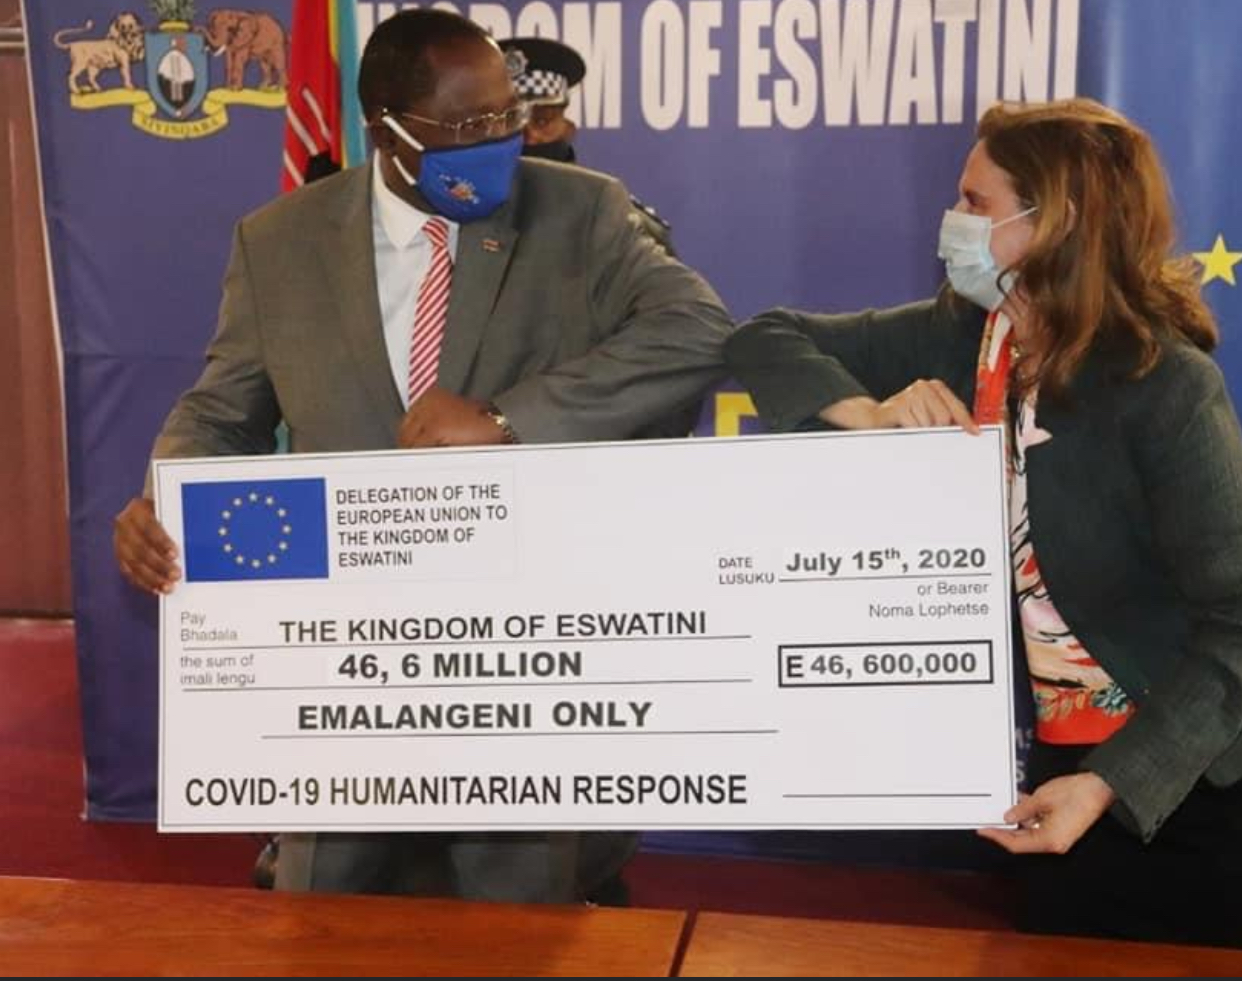 European Union (EU) Eswatini donates E46.6 million towards food assistance to counter COVID-19 effects